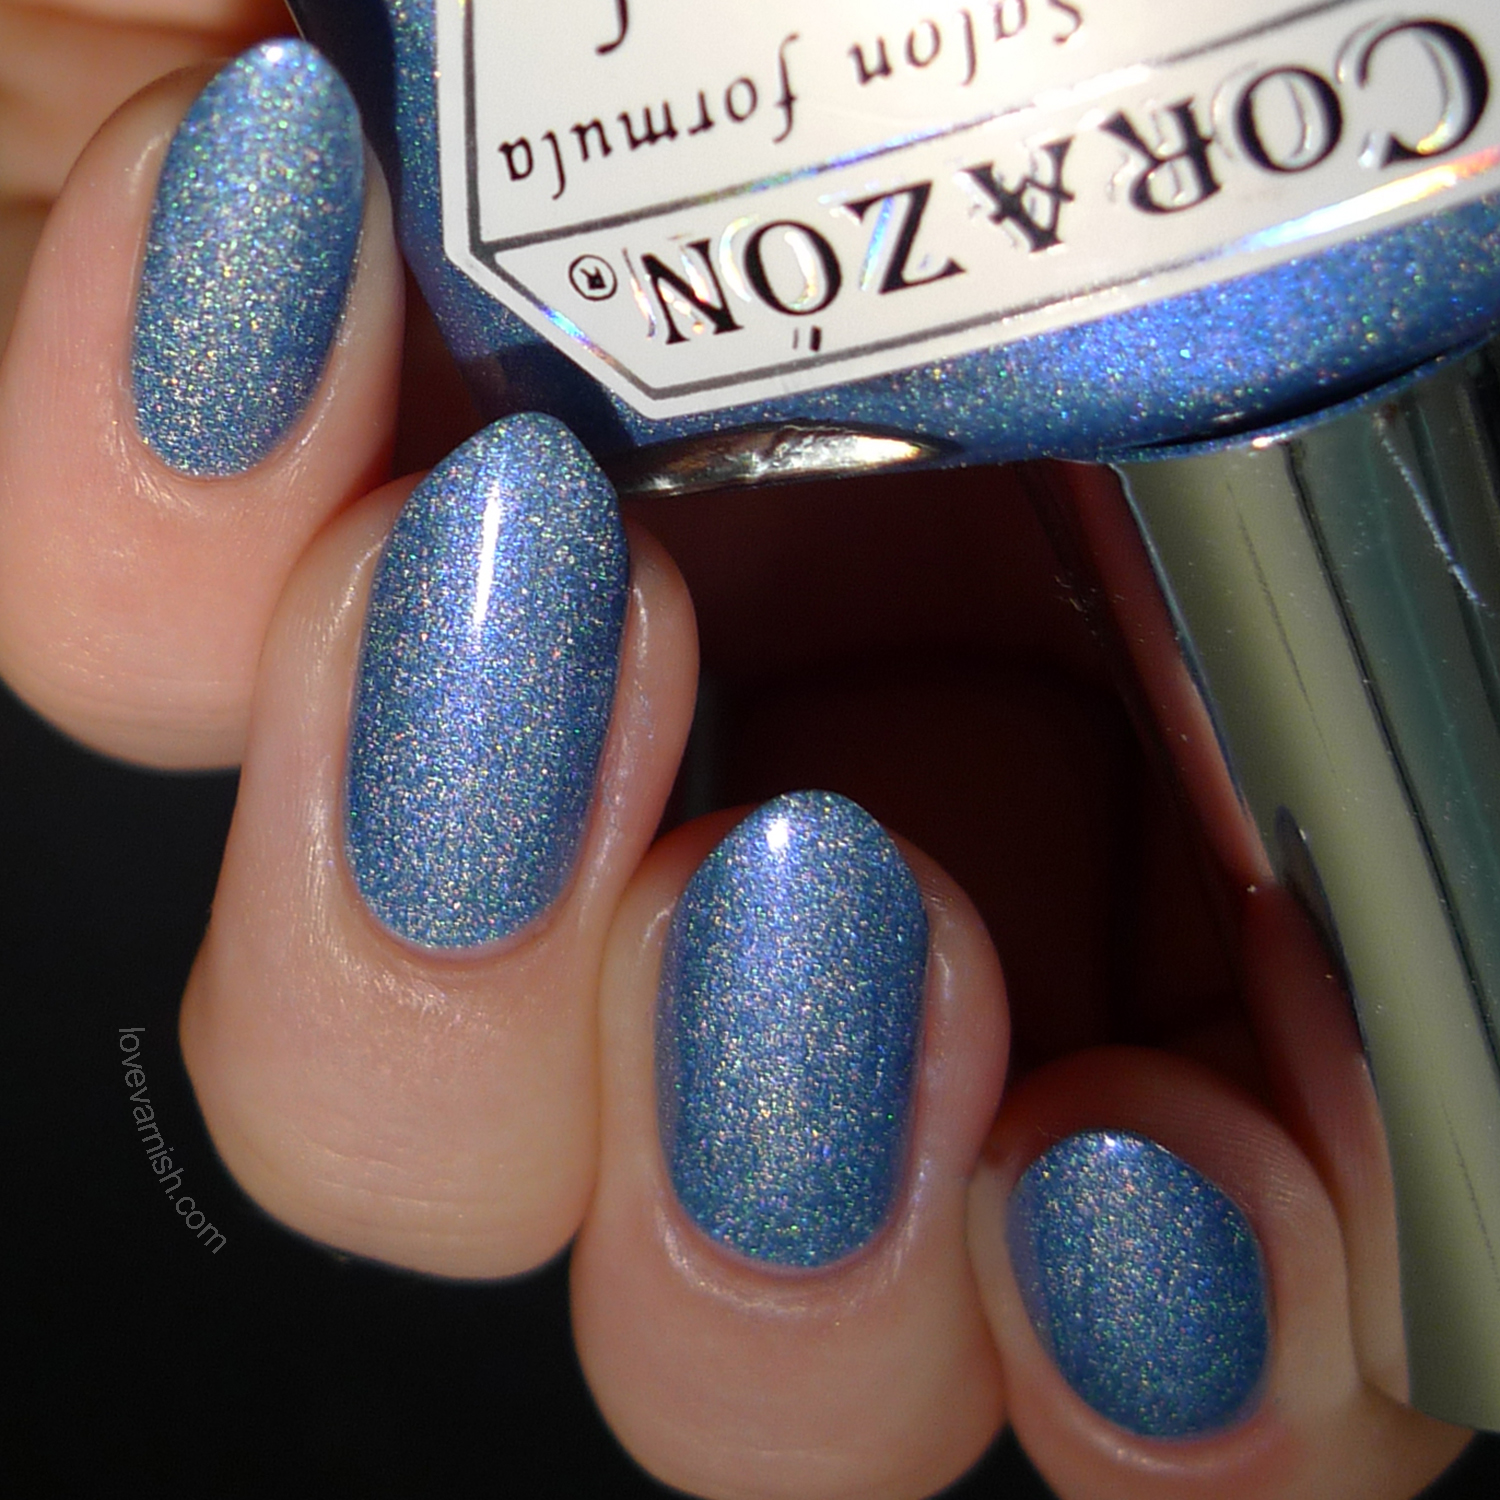 El Corazon Prisma 423-37 swatches and review